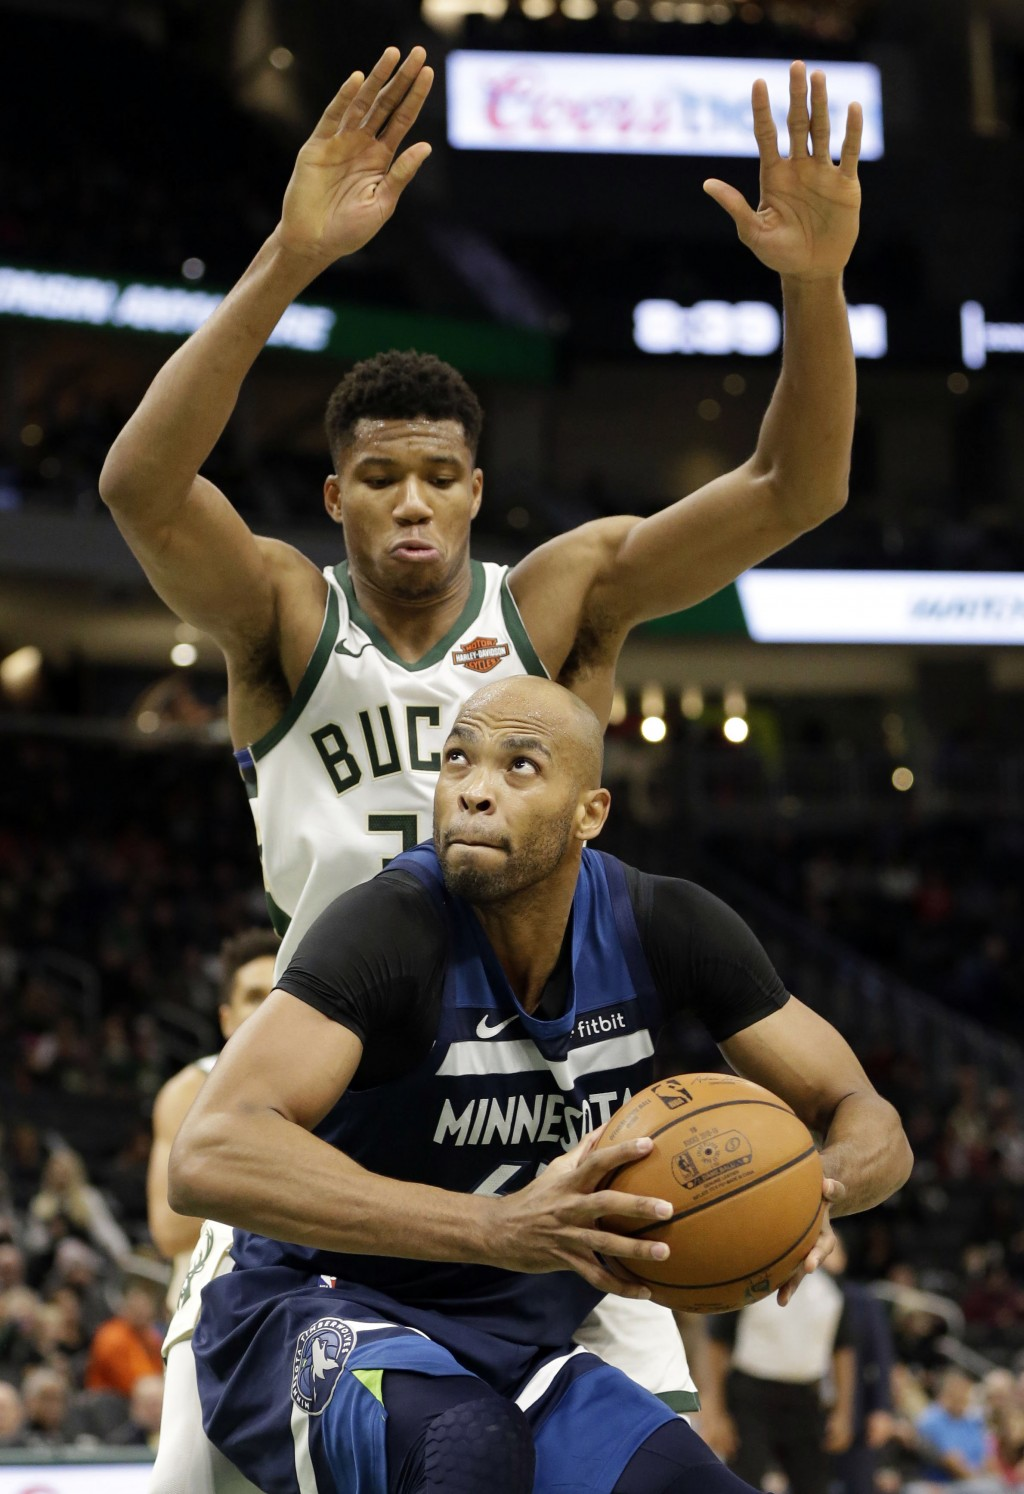 Milwaukee Bucks forward Giannis Antetokounmpo, top, defends as Minnesota Timberwolves forward Taj Gibson drives under the basket during the first half